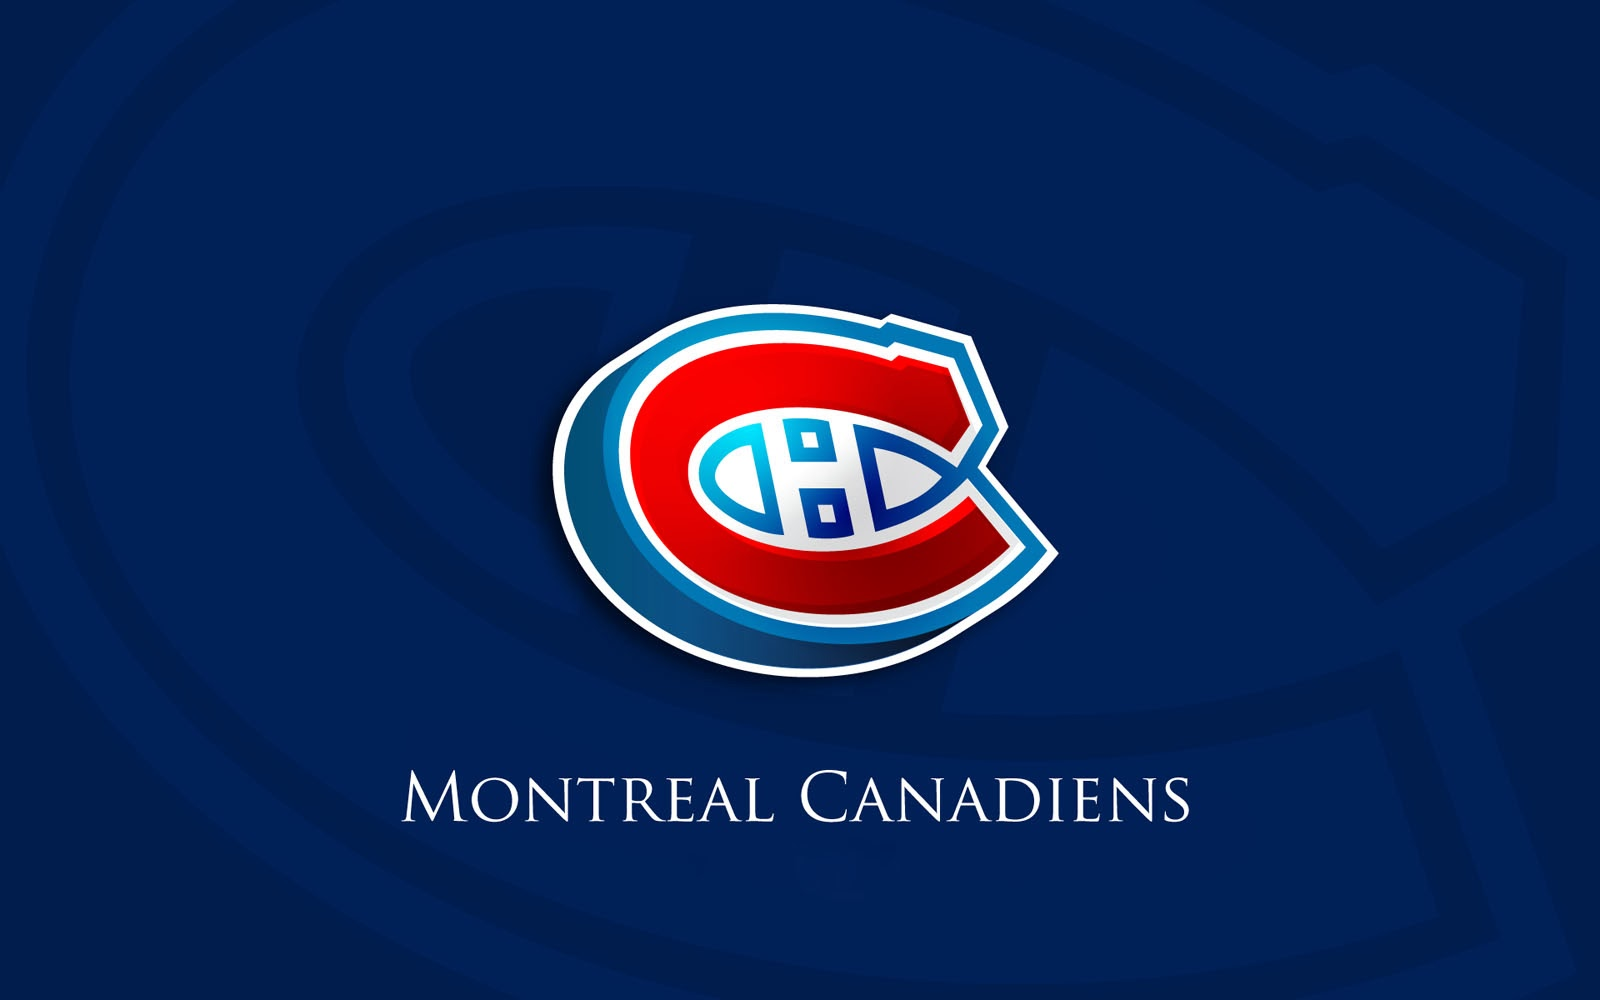 Set Wallpaper Cars Wallpapers Montreal Canadiens Wallpapers